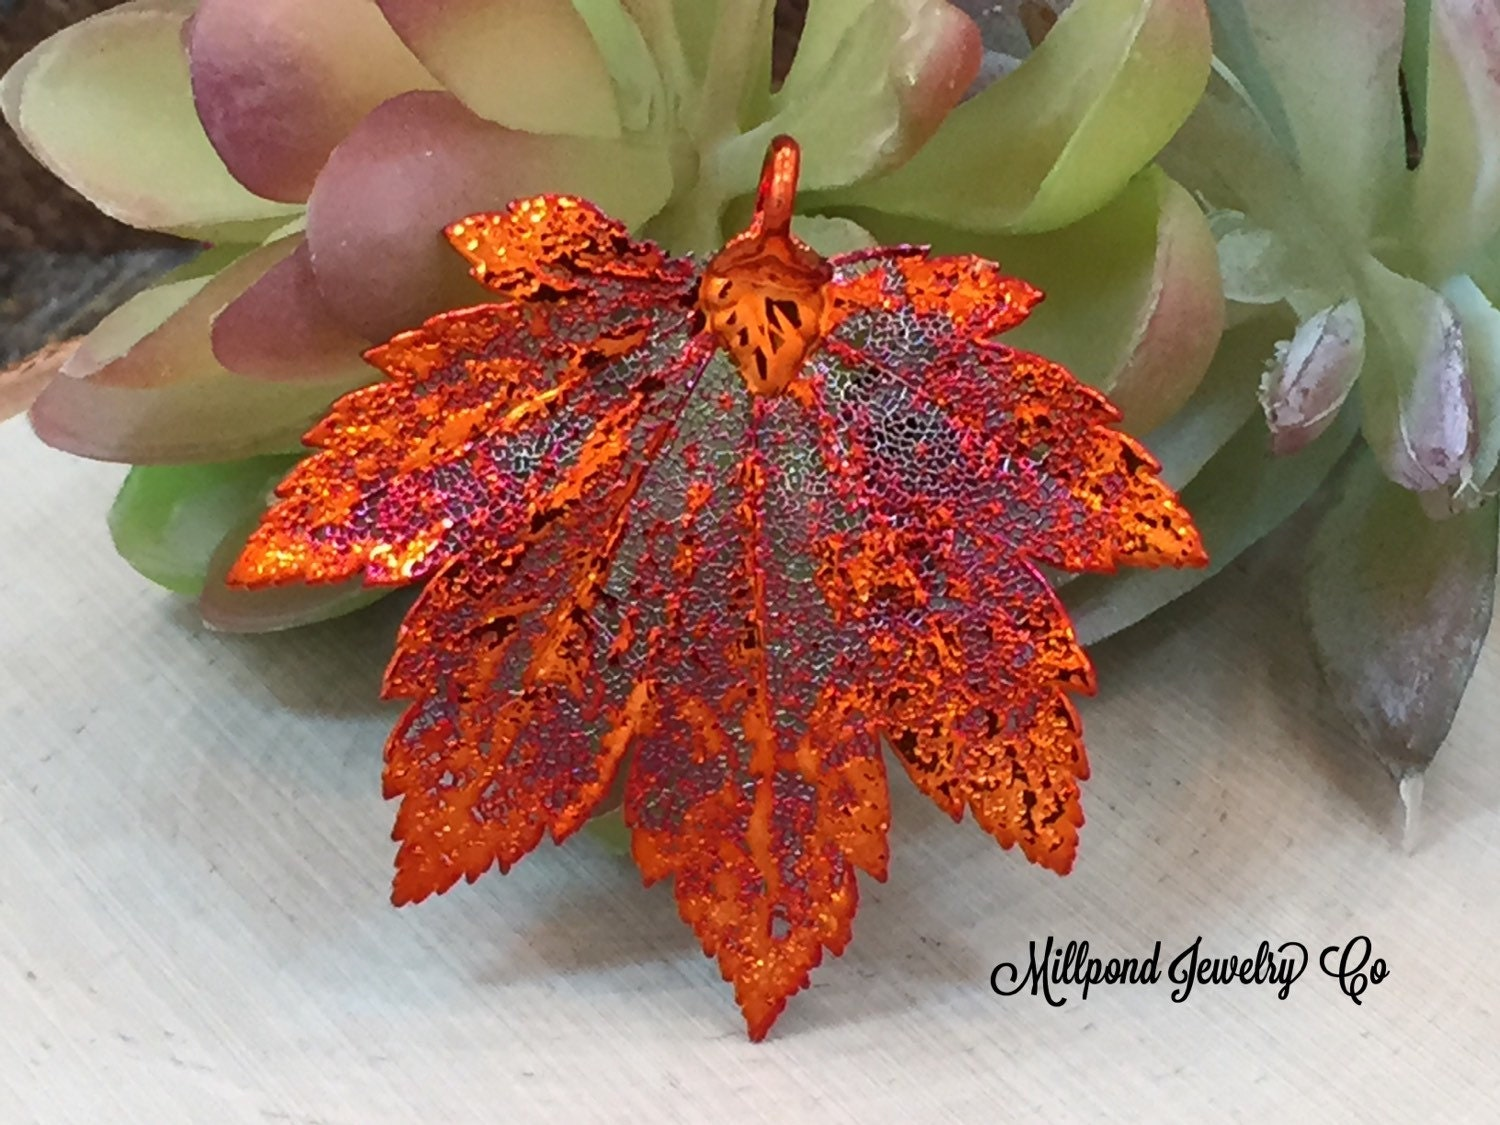 Autumn Acer Japonicum aconitifolium 'The Fern Leaf Full ... |Full Moon Maple Leaf